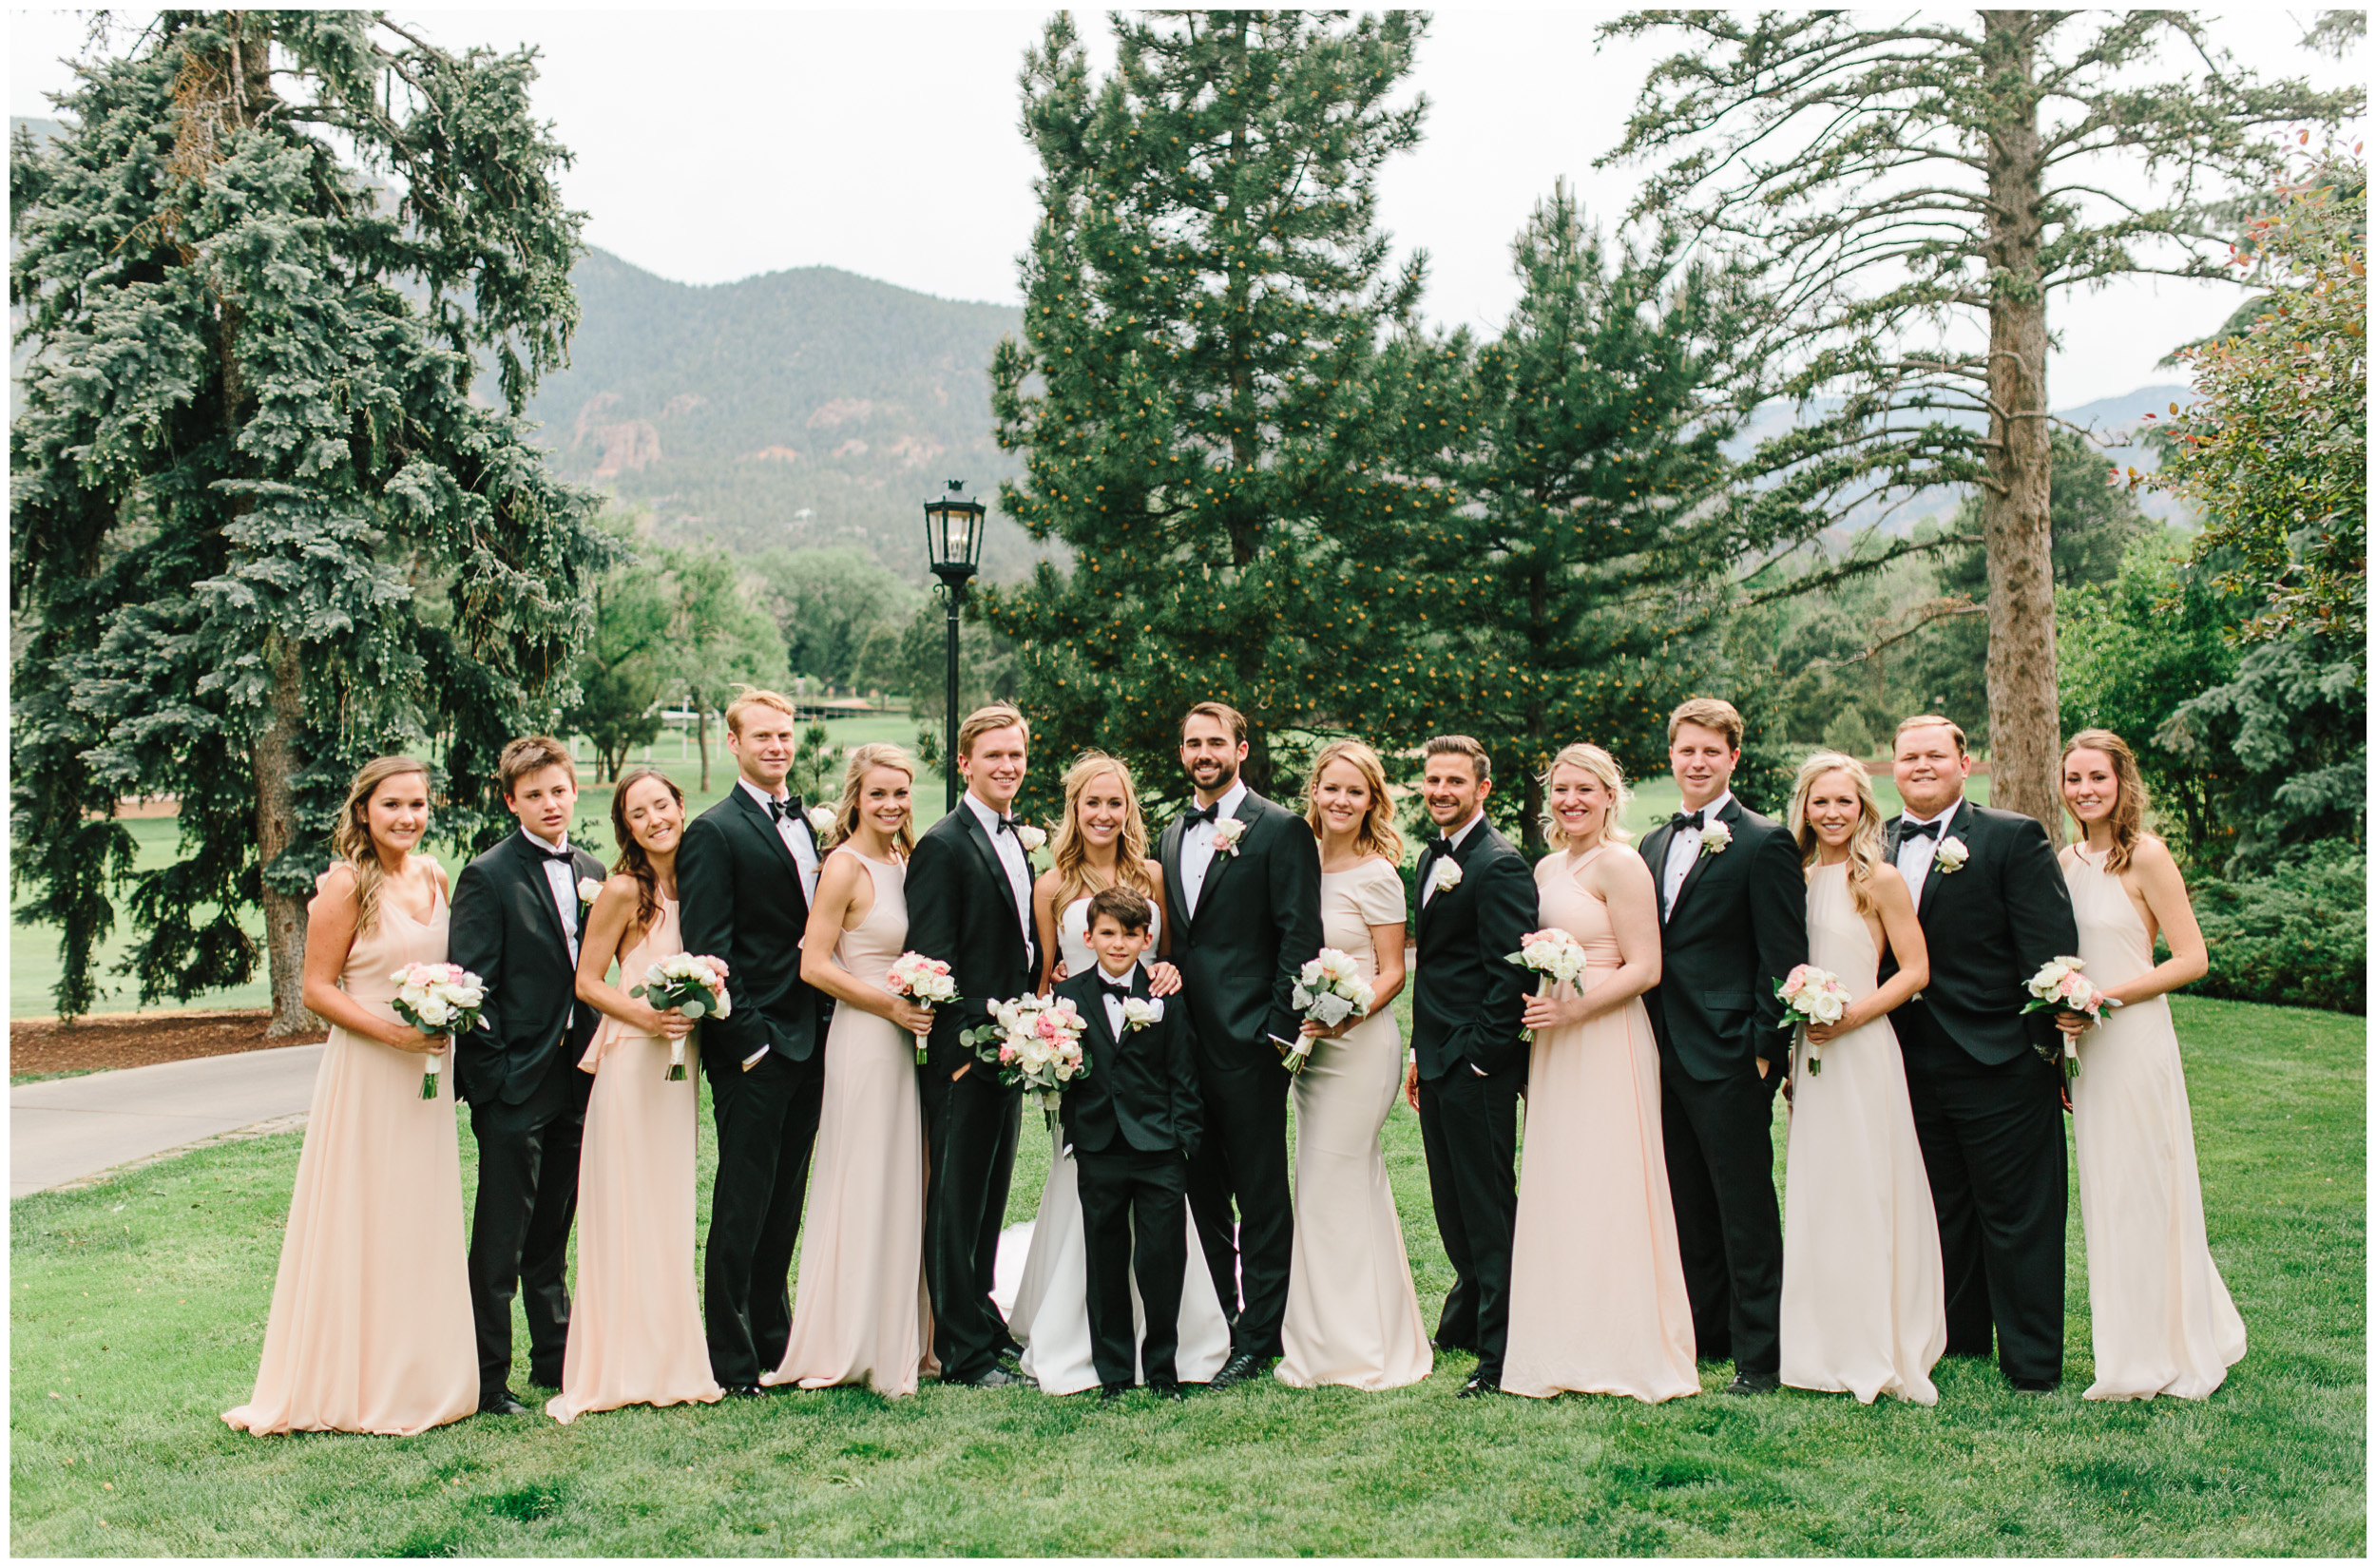 broadmoor_wedding_43a.jpg